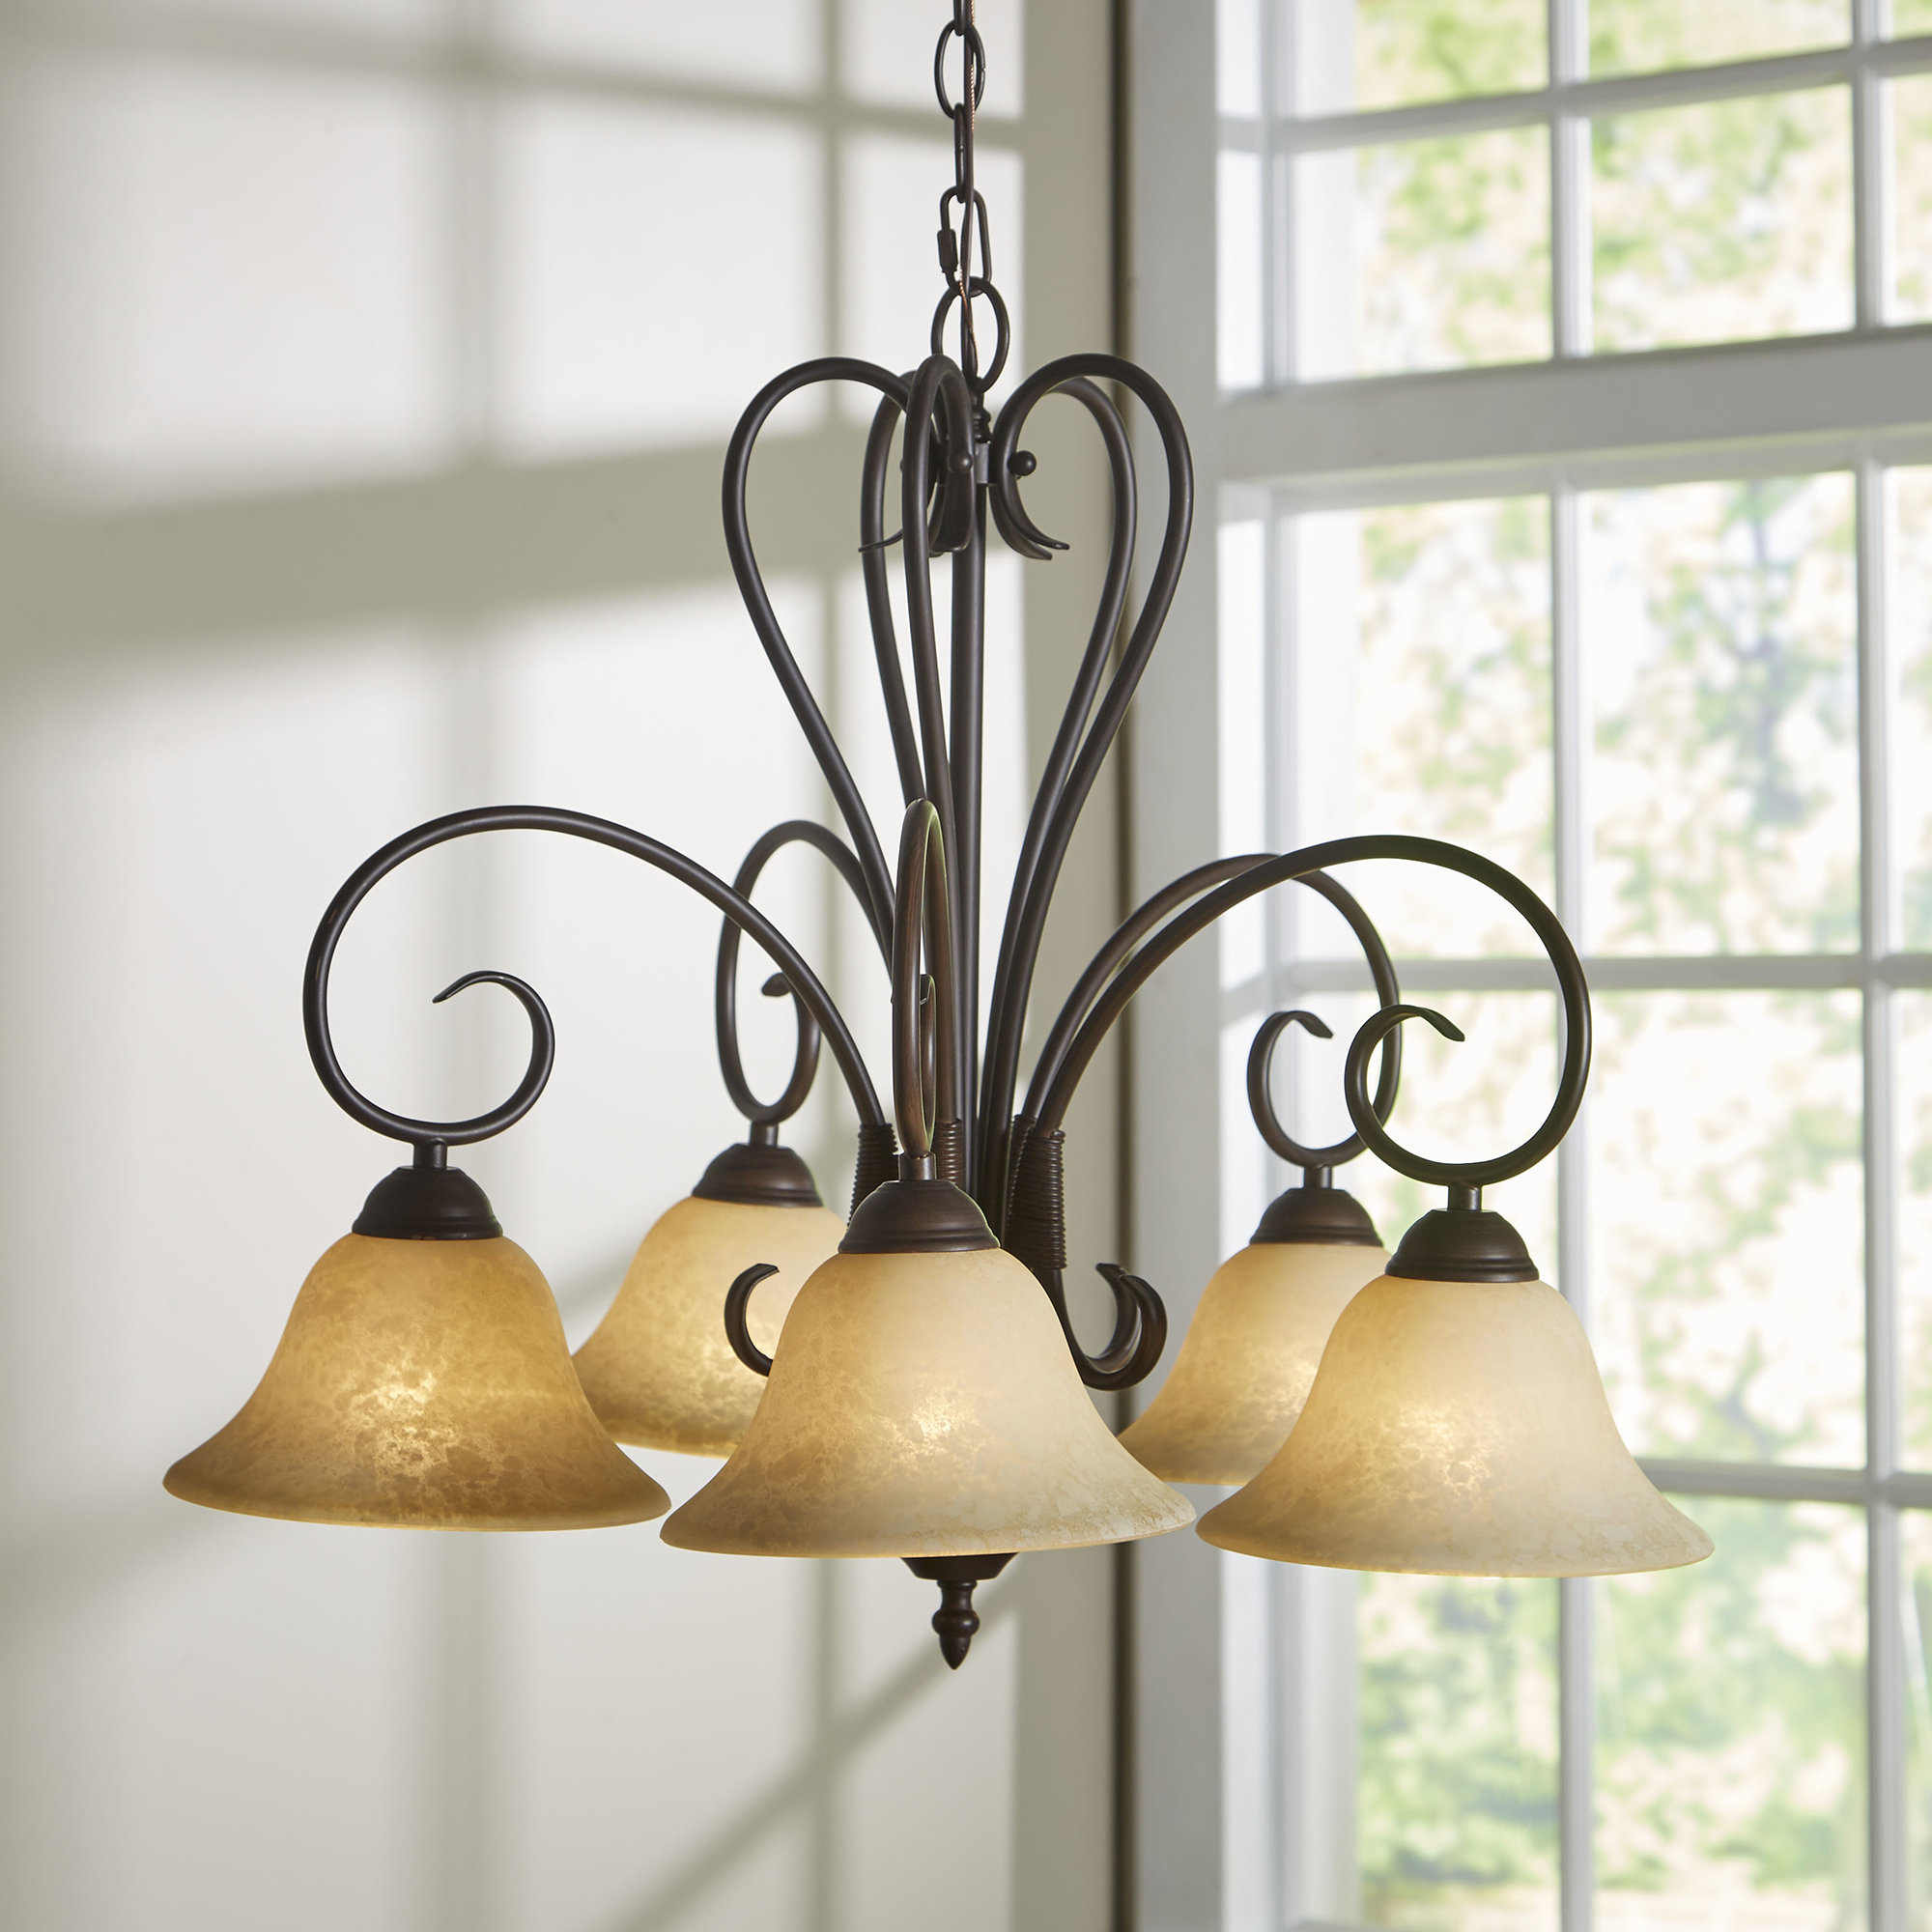 Widely Used Gaines 5 Light Shaded Chandelier With Hayden 5 Light Shaded Chandeliers (View 20 of 20)